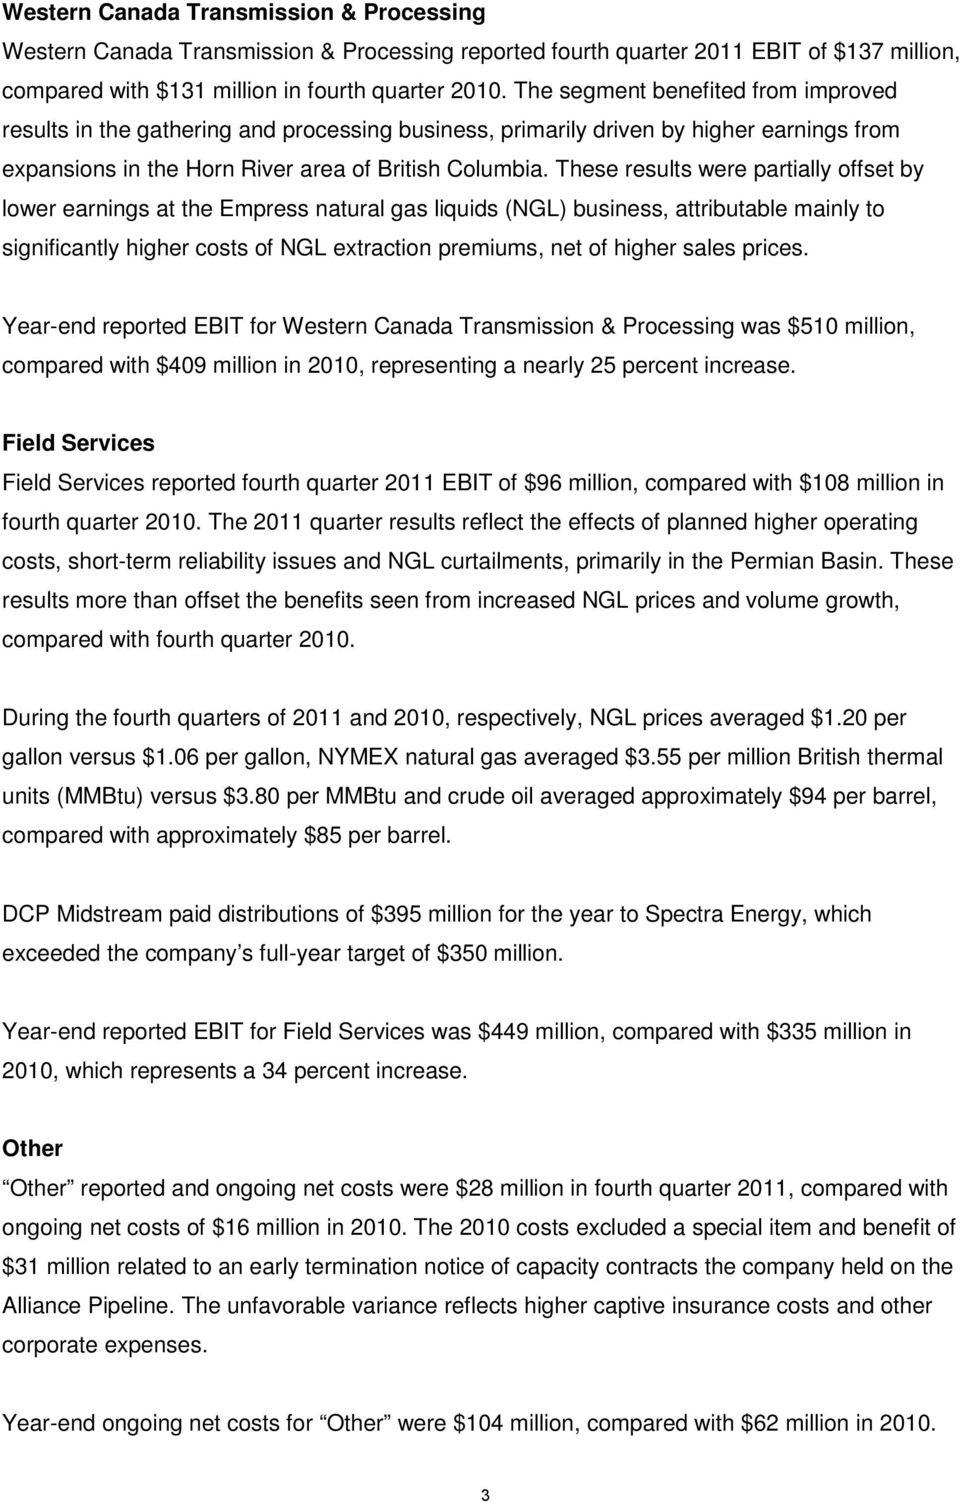 These results were partially offset by lower earnings at the Empress natural gas liquids (NGL) business, attributable mainly to significantly higher costs of NGL extraction premiums, net of higher